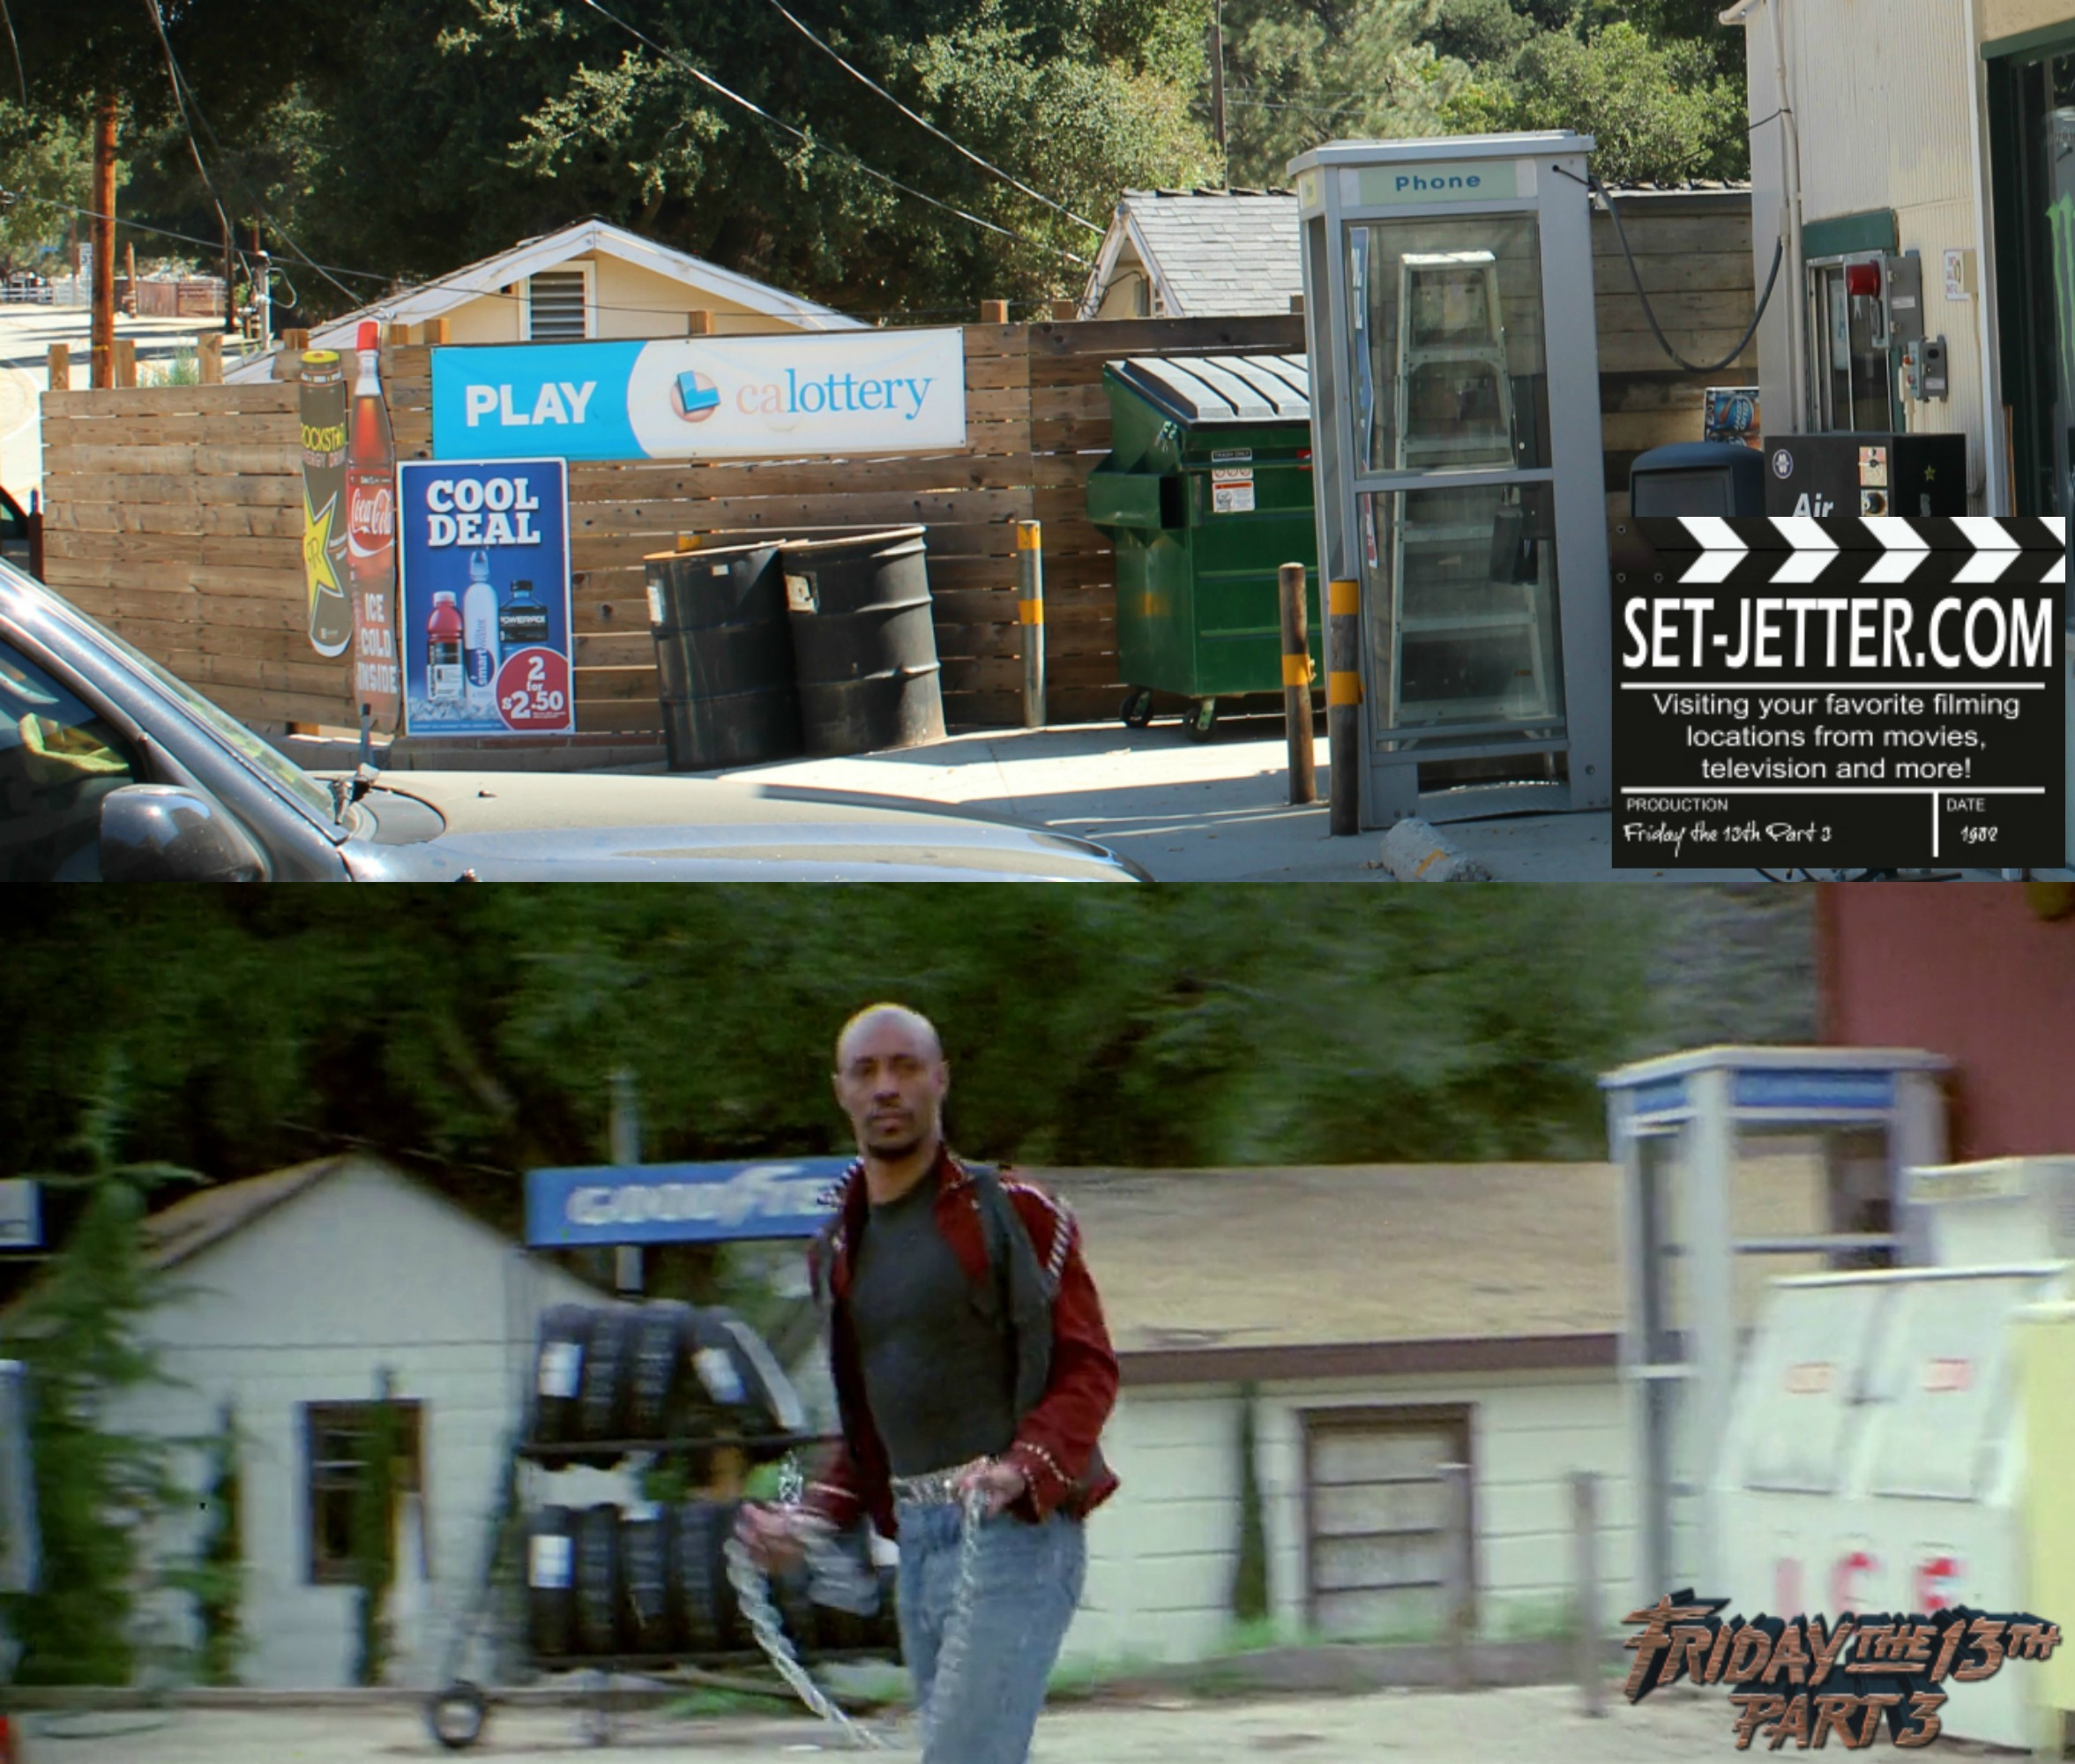 Friday the 13th Part 3 compairson 169.jpg